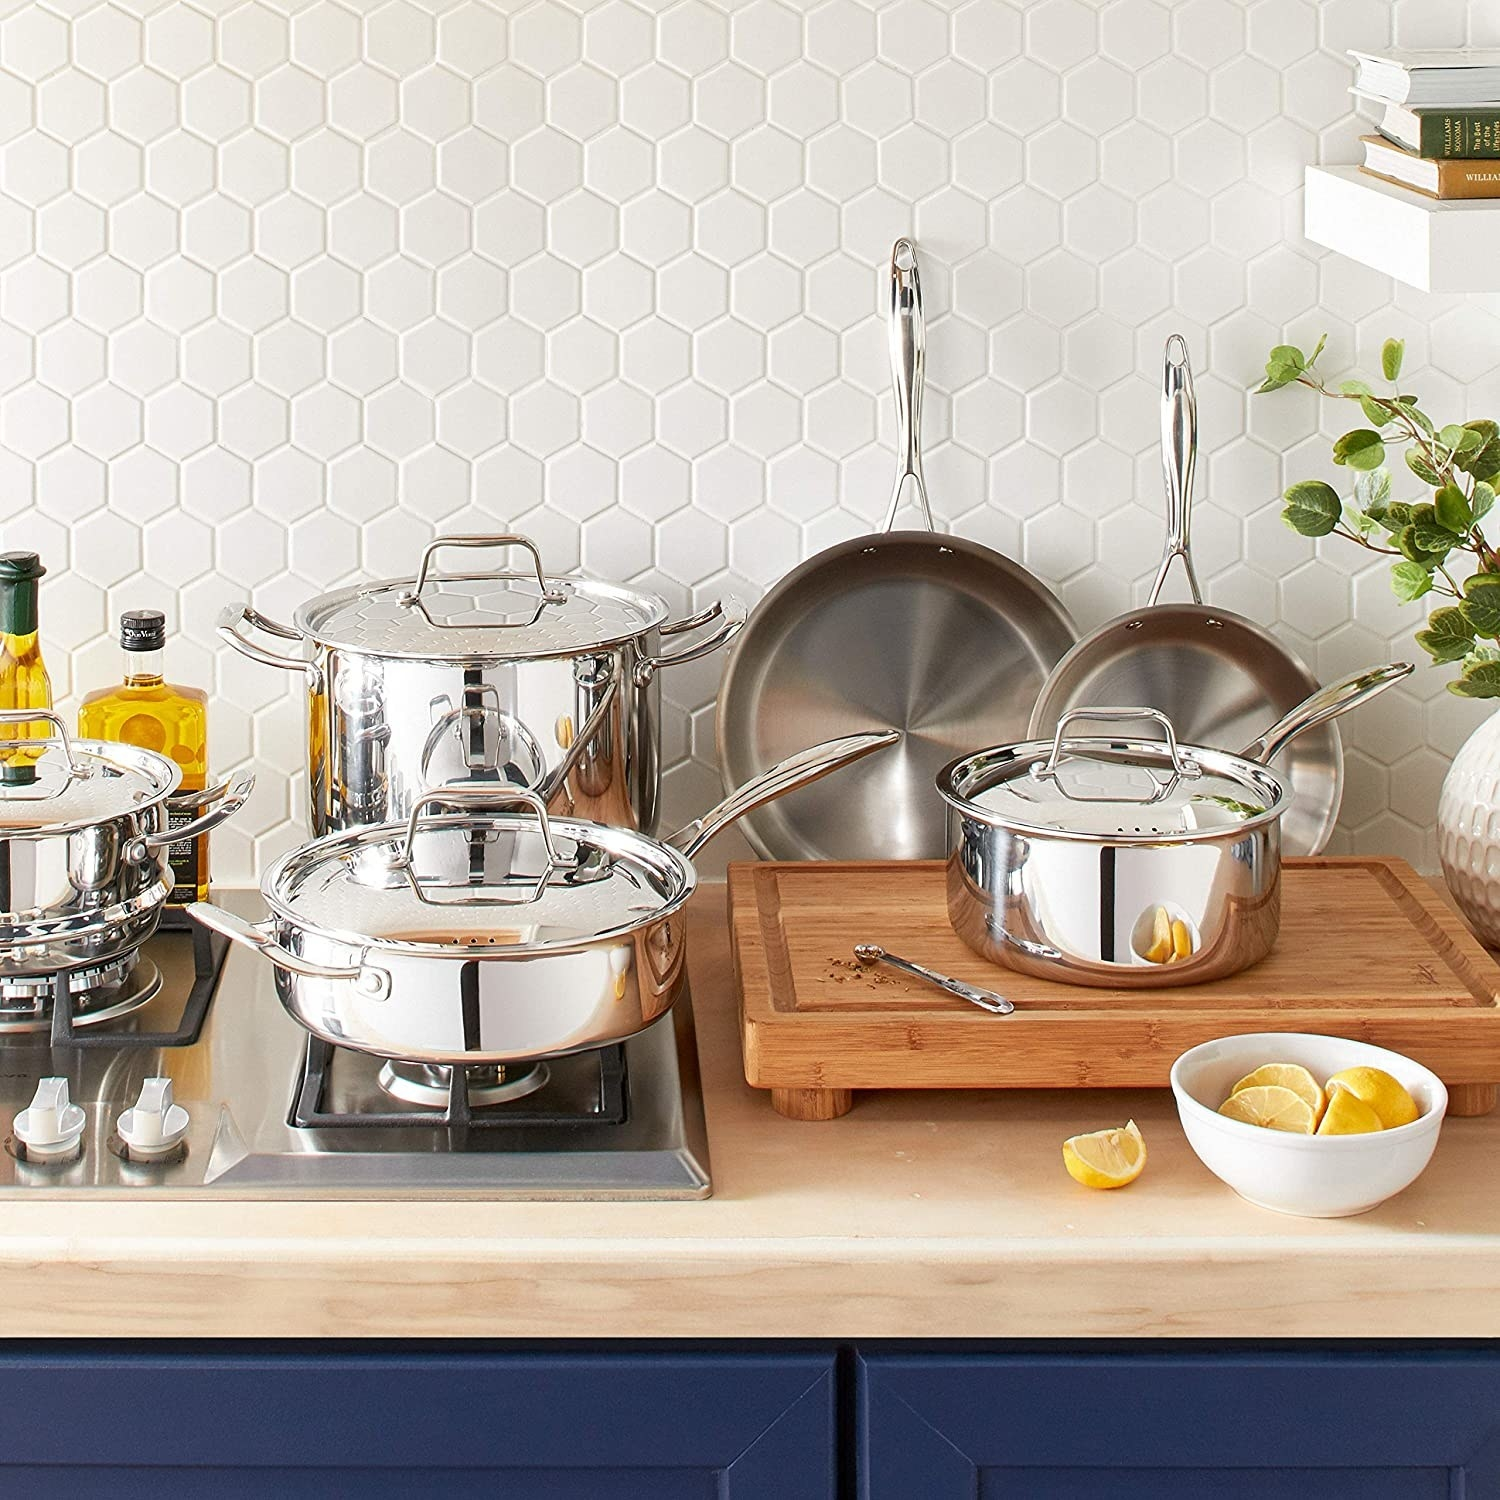 The set of cookware arranged on a butcher block counter